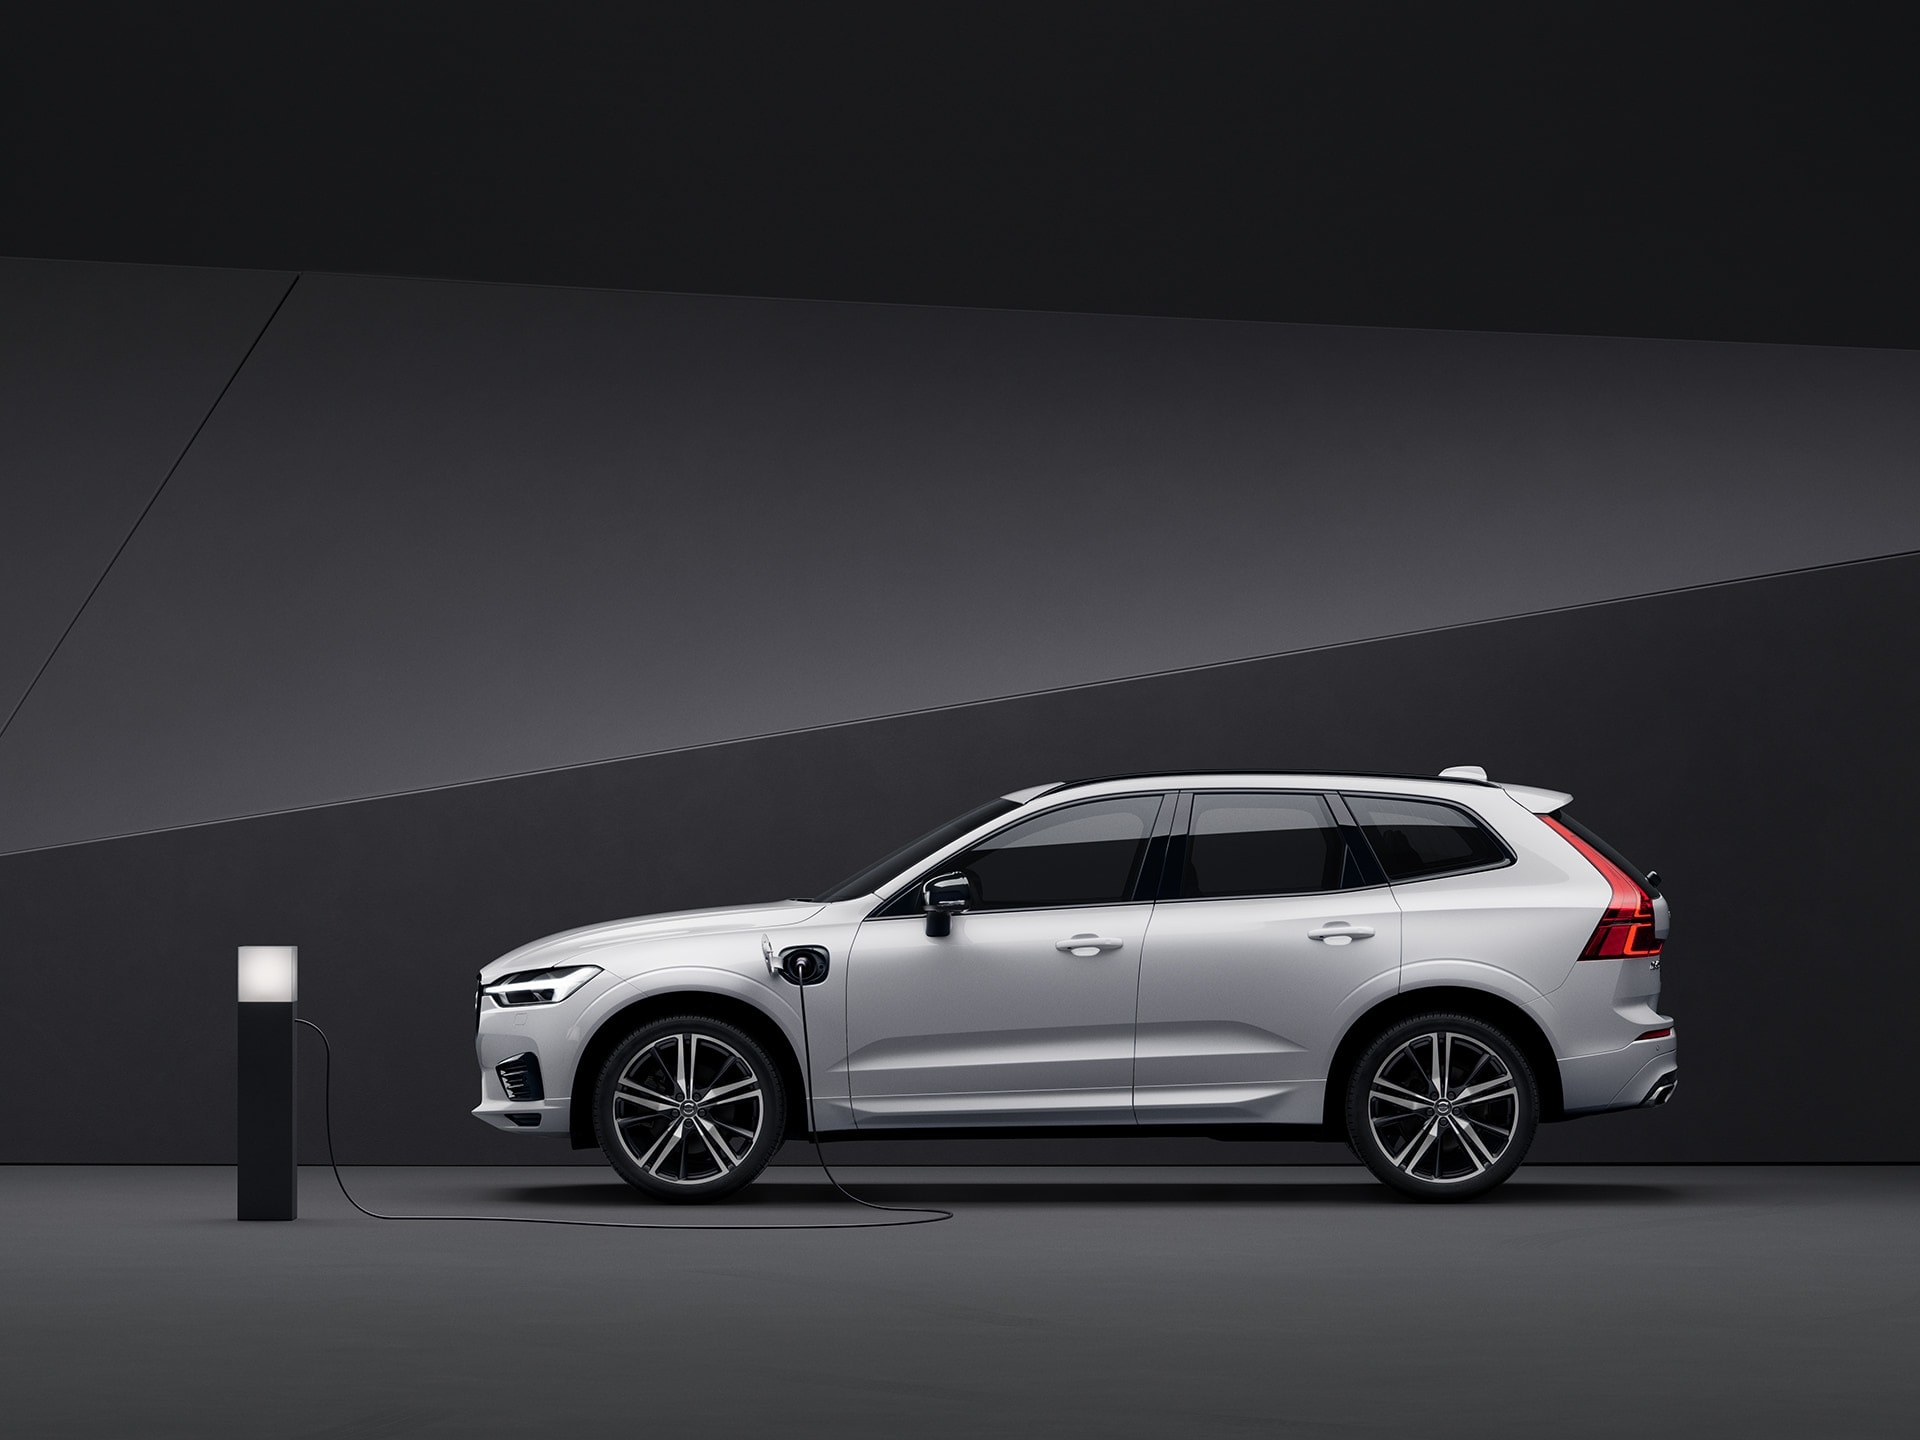 A white Volvo XC60 Recharge charges in a black surrounding